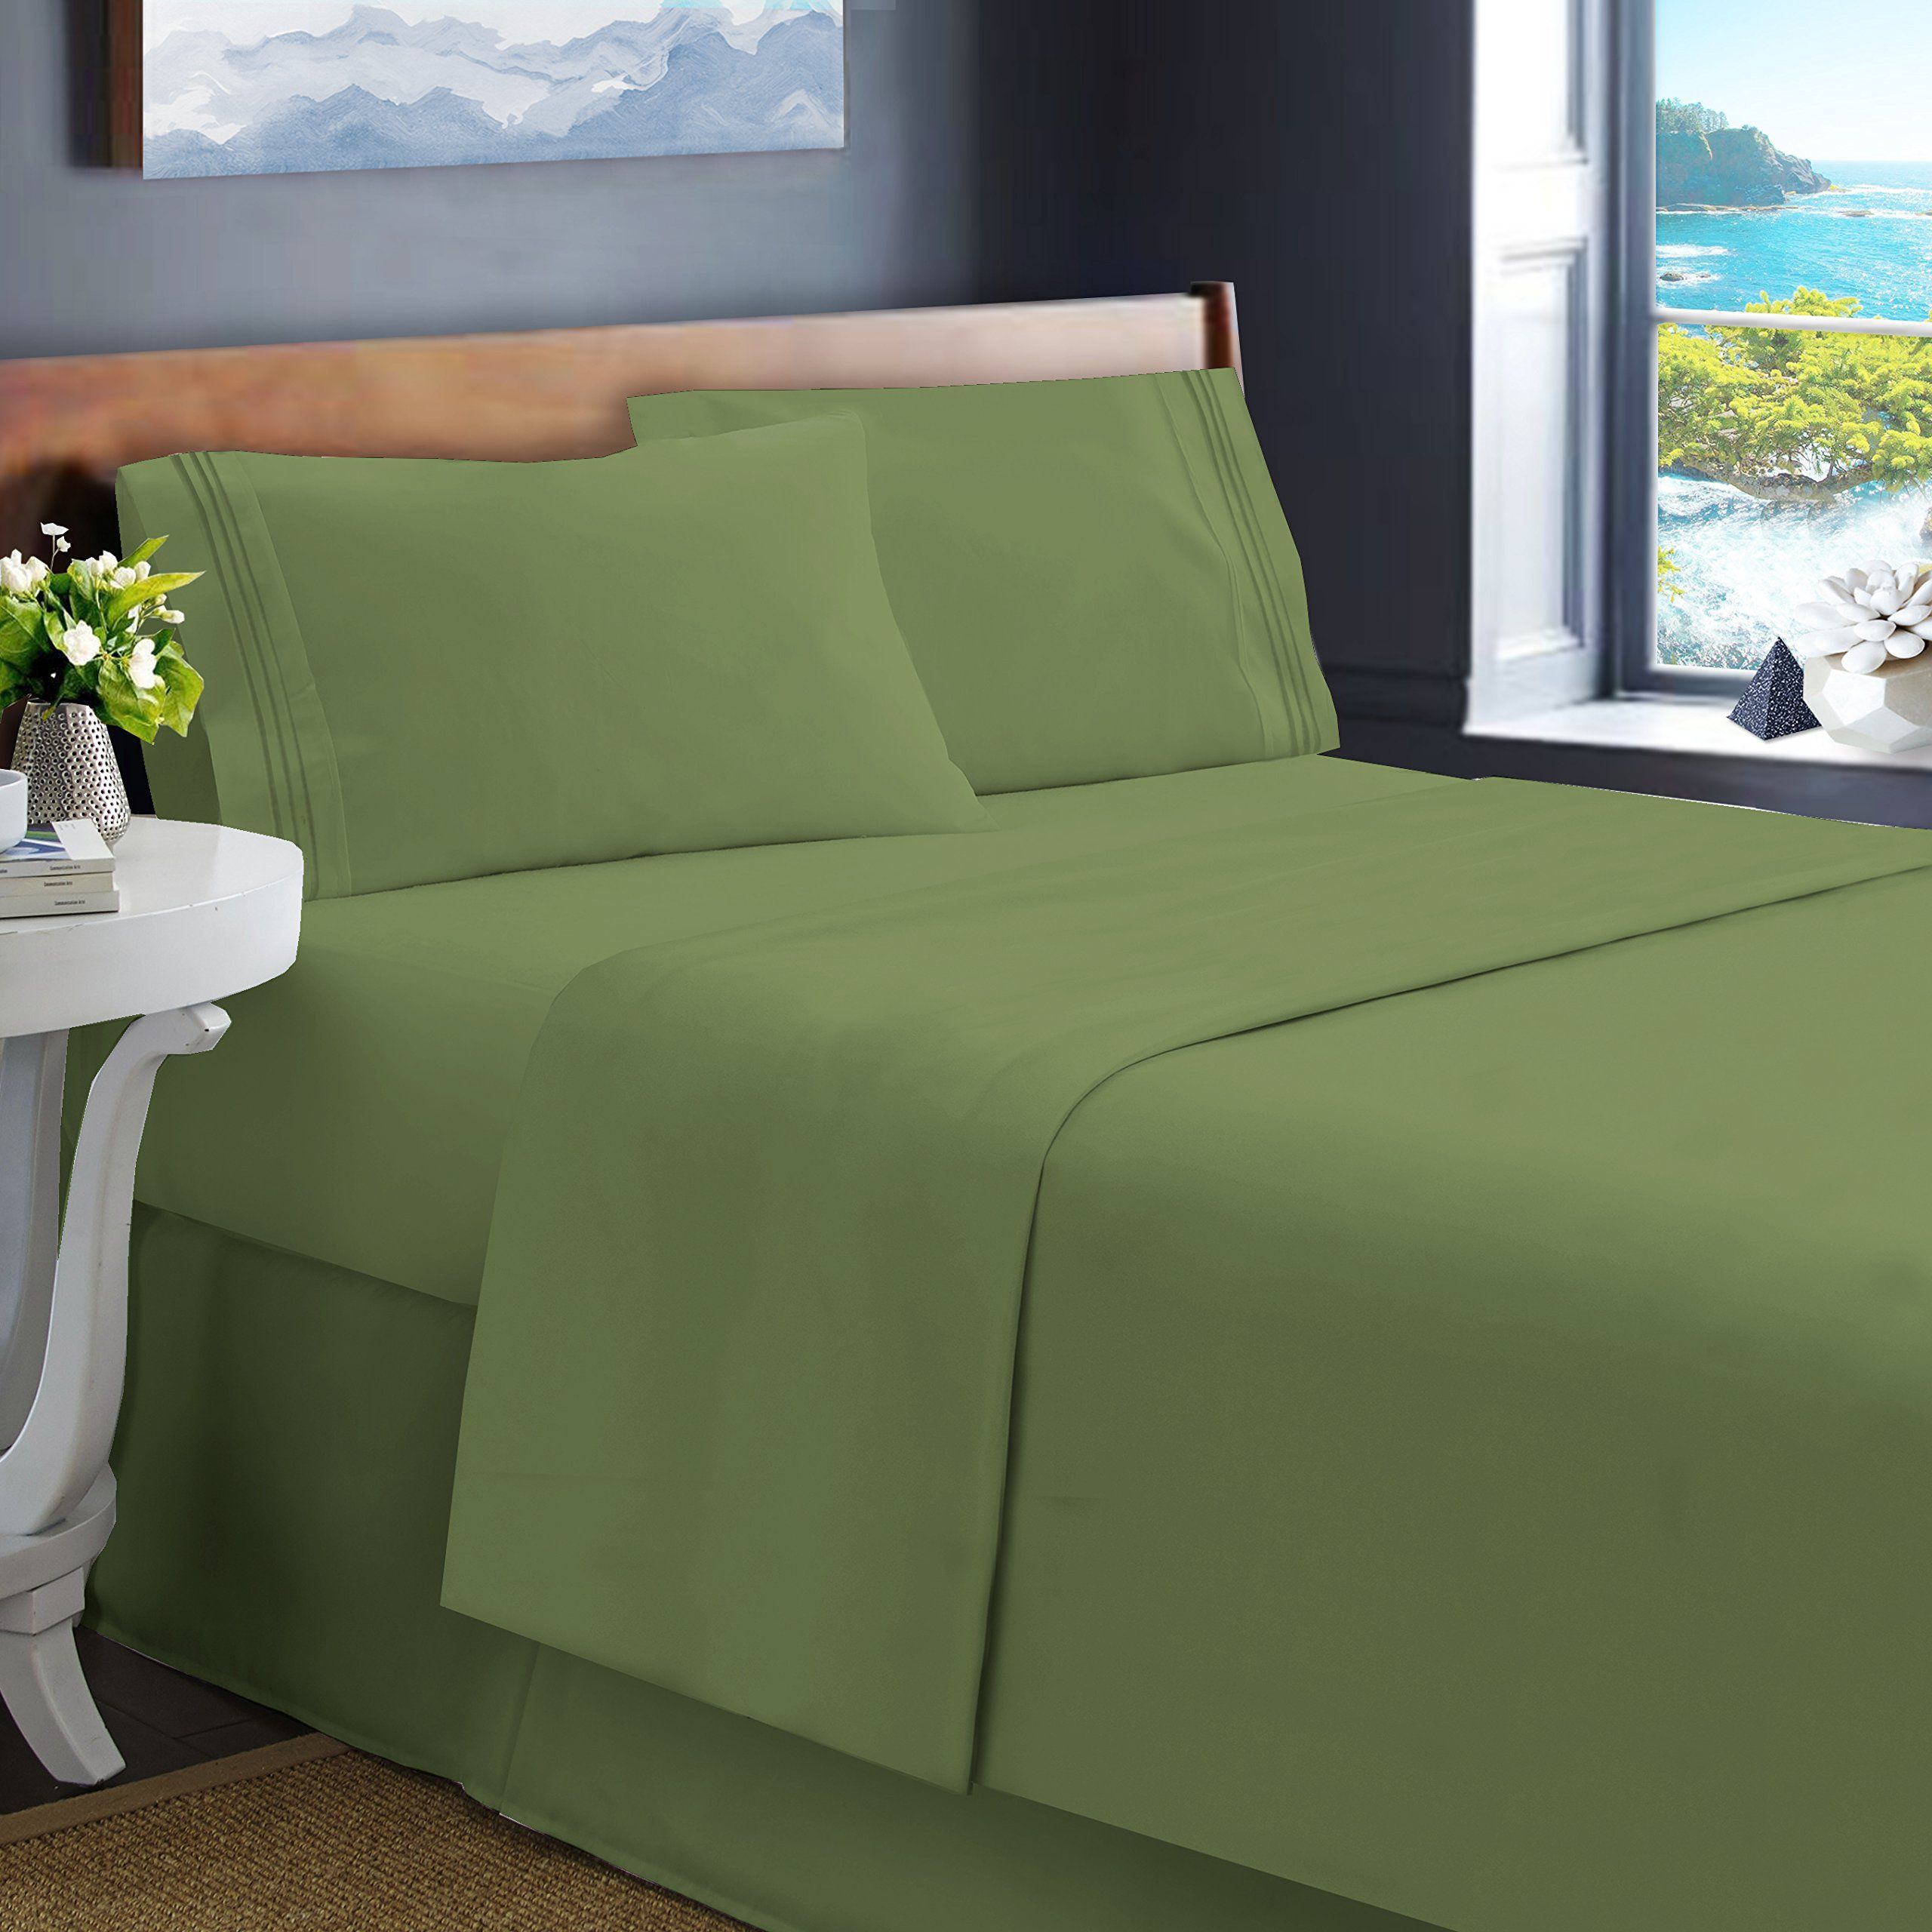 Harbor U0026 Hearth Size 4Piece Bed Sheet Set,   Best Quality Double Brushed  Microfiber Sheets